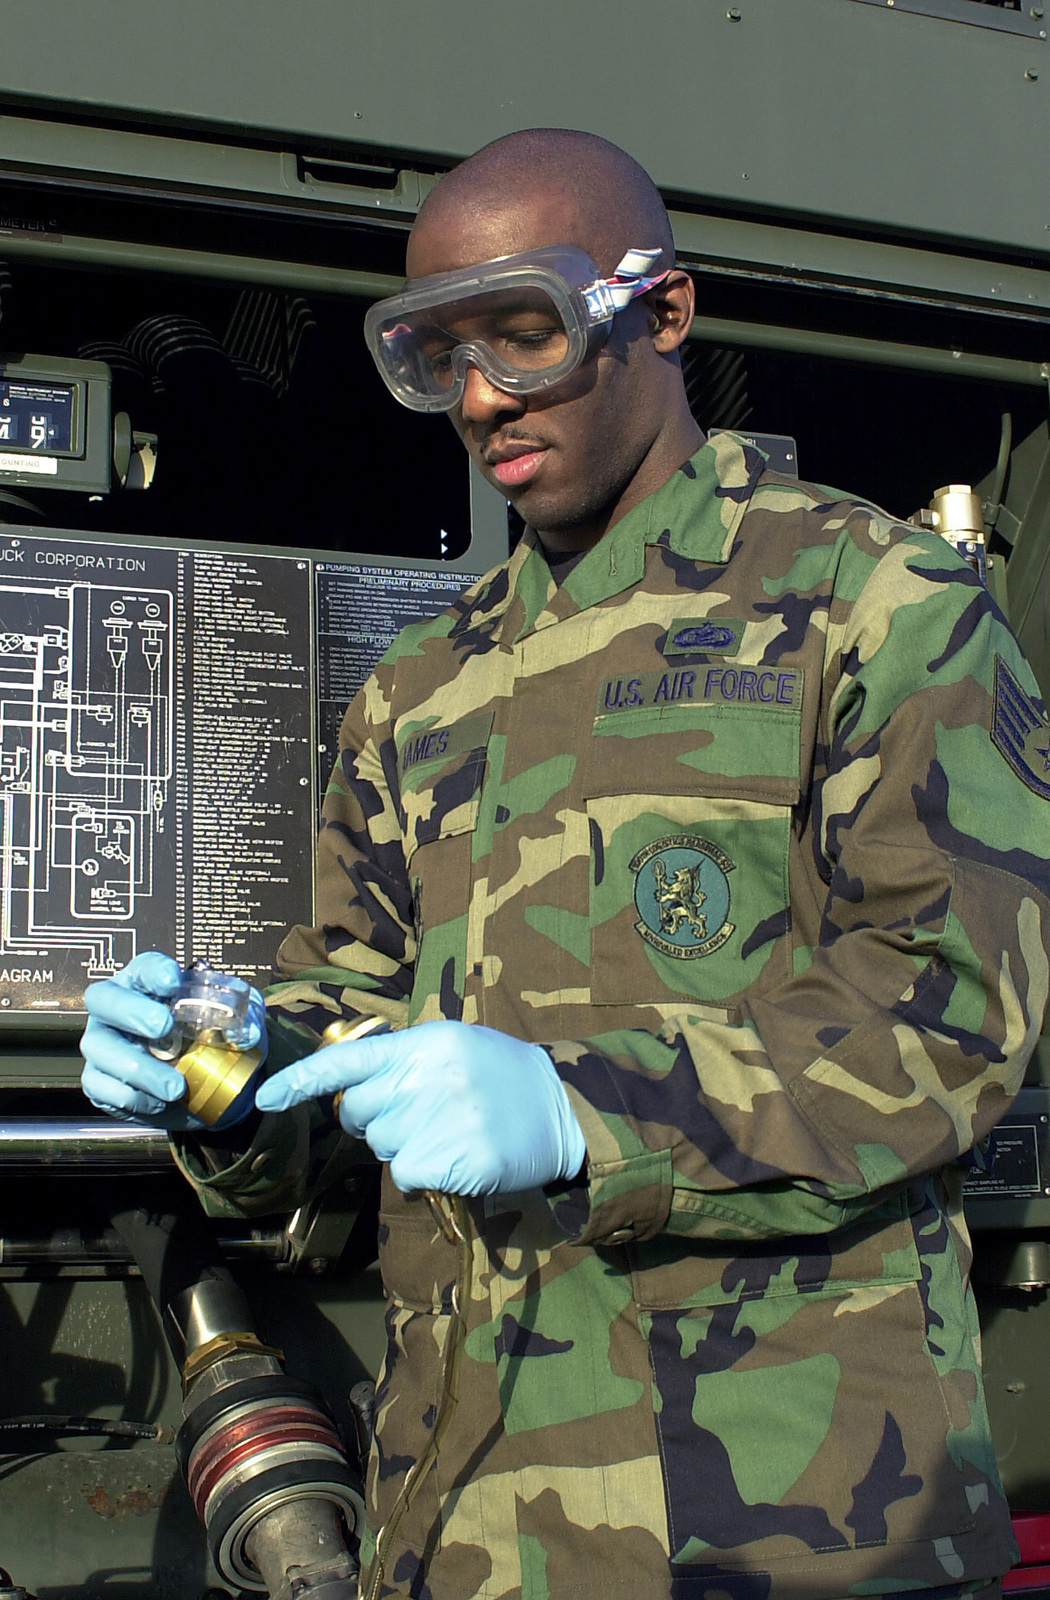 US Air Force (USAF) STAFF Sergeant (SSGT) Rasmus O. James, 100th Logistics Readiness Squadron, prepares a Contamination Analysis filtering Unit, an in-line fuel sampler, for his fuel truck at RAF Mildenhall, United Kingdom. The Unit helps technicians check the fuel color and for particle assessment tests required to maintain fuel quality